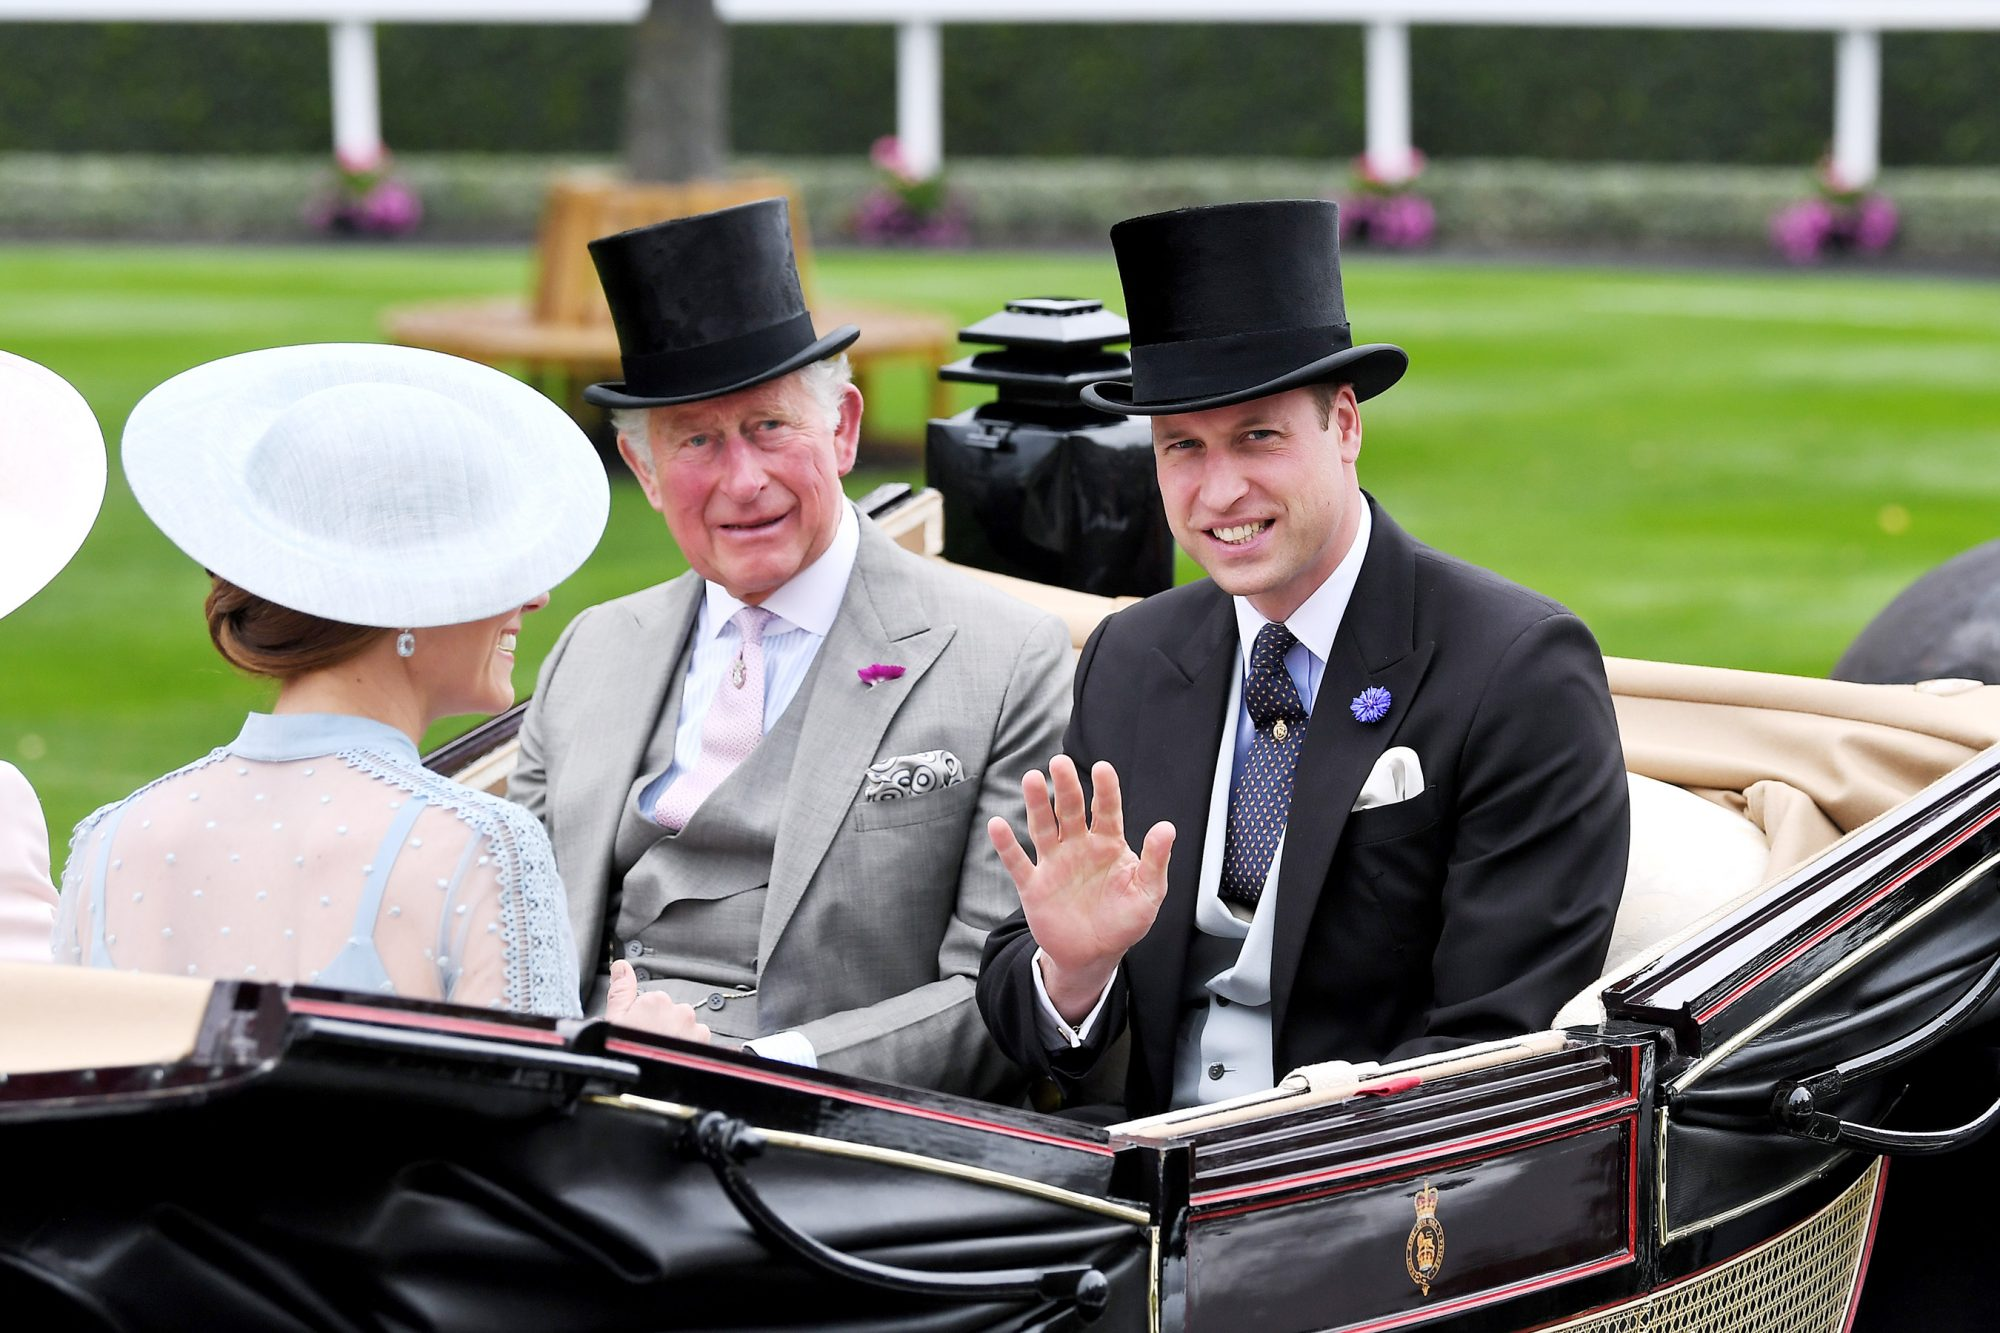 Prince Charles and Prince William Royal Ascot